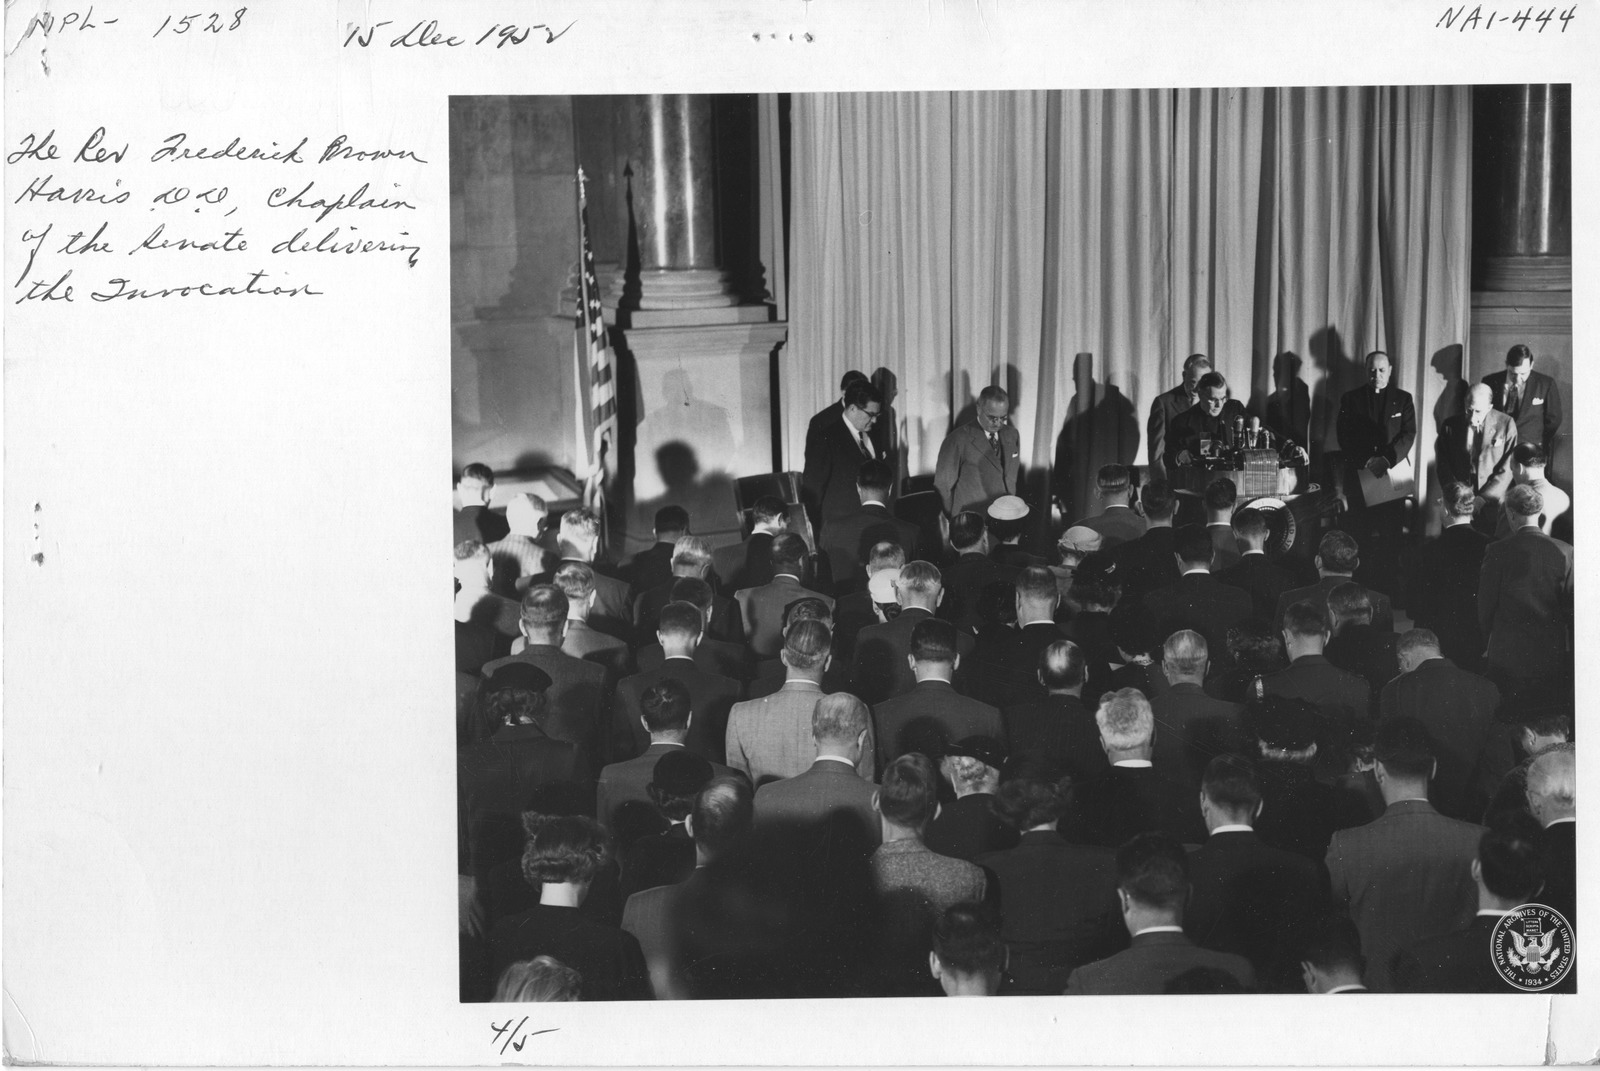 Photograph of Rev. Frederick Brown Harris, Chaplain of the Senate Delivering the Invocation